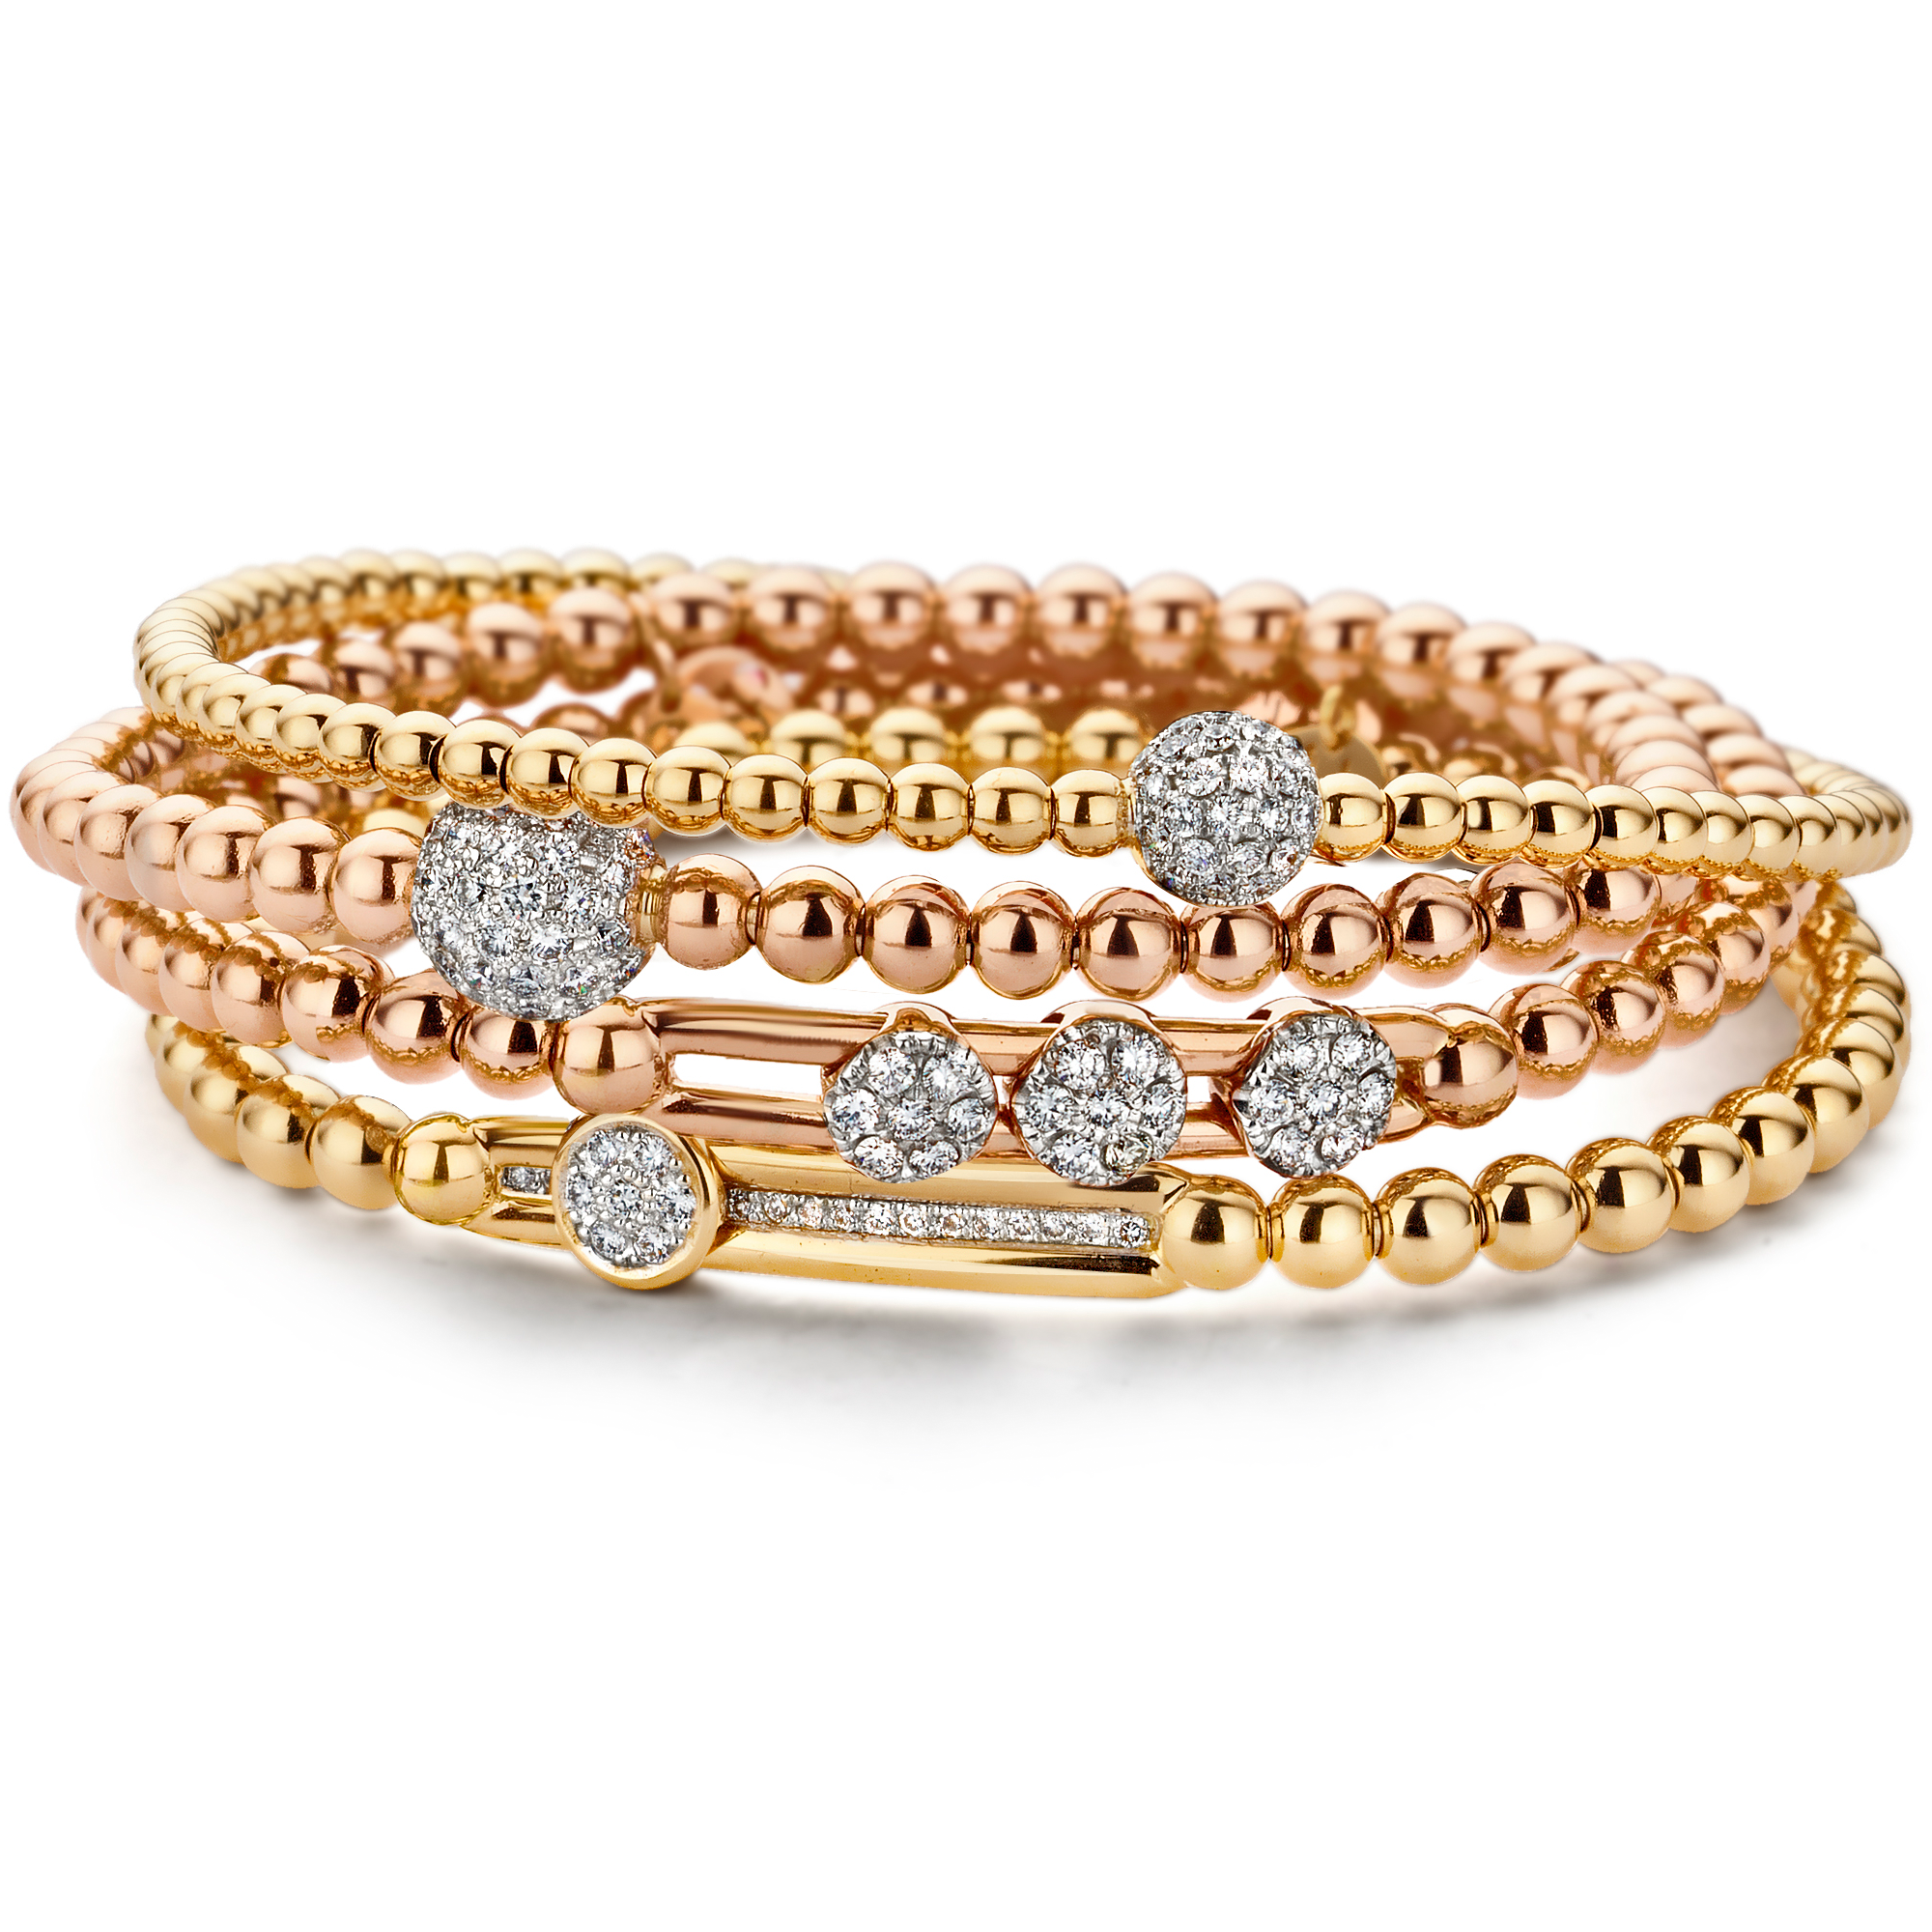 bangle gold top eternity white in with diamond milgrain bangles band pave channel ring wedding set